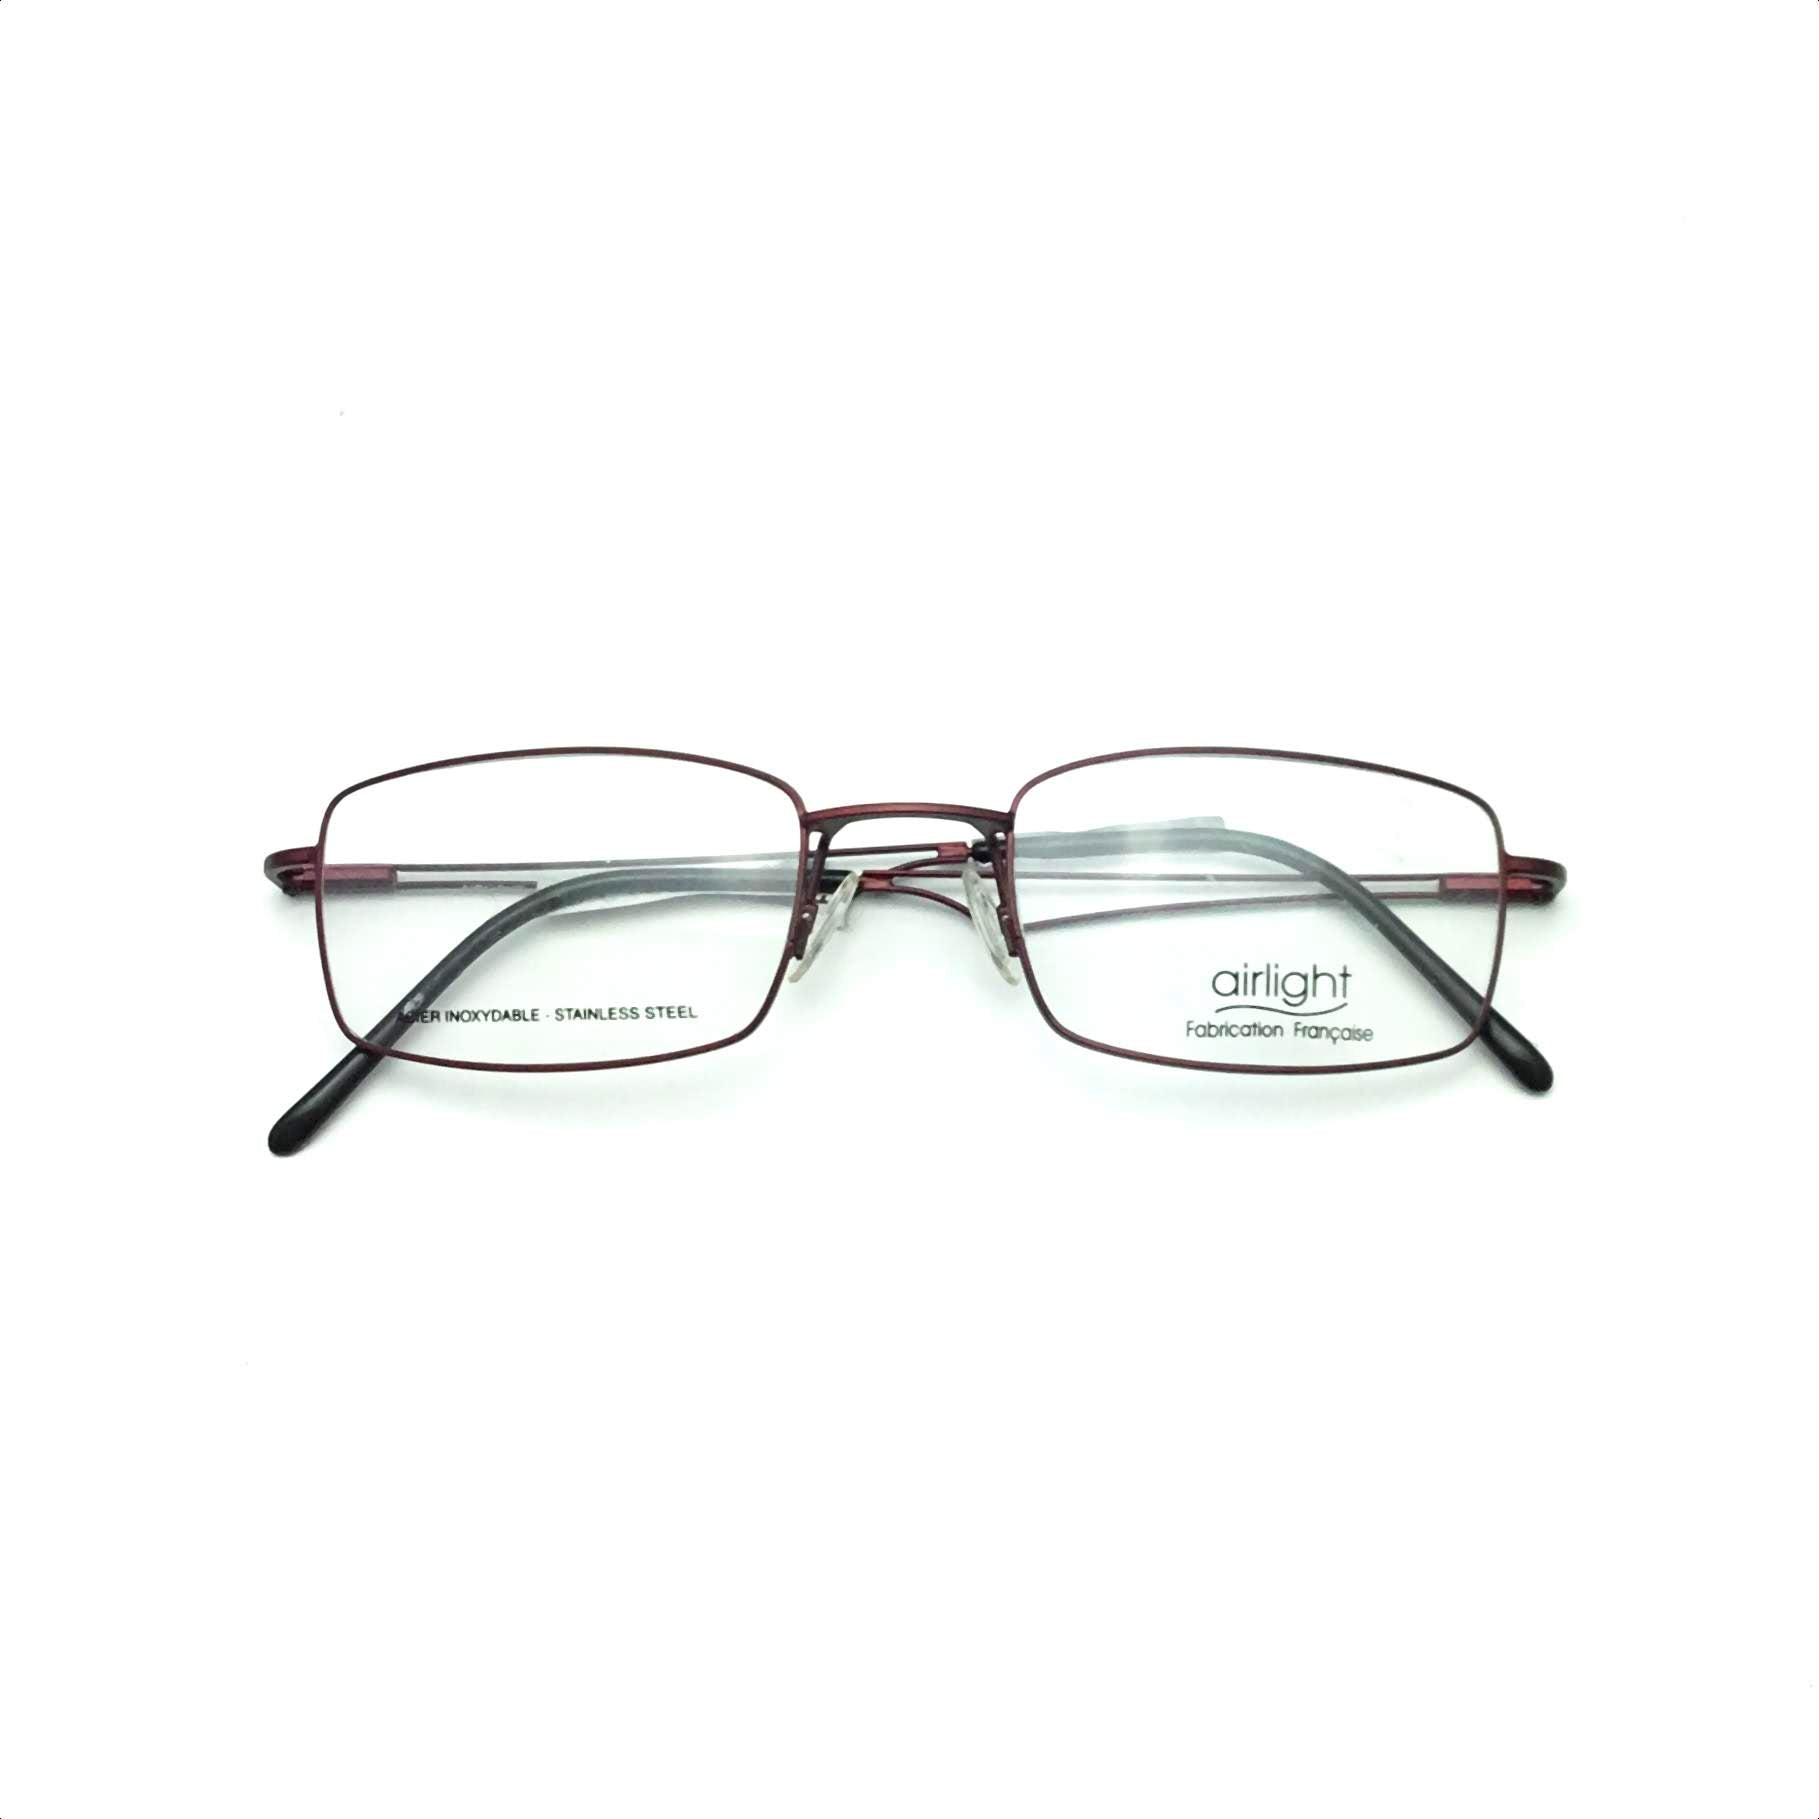 Air light Glasses $239 FRANCE M5